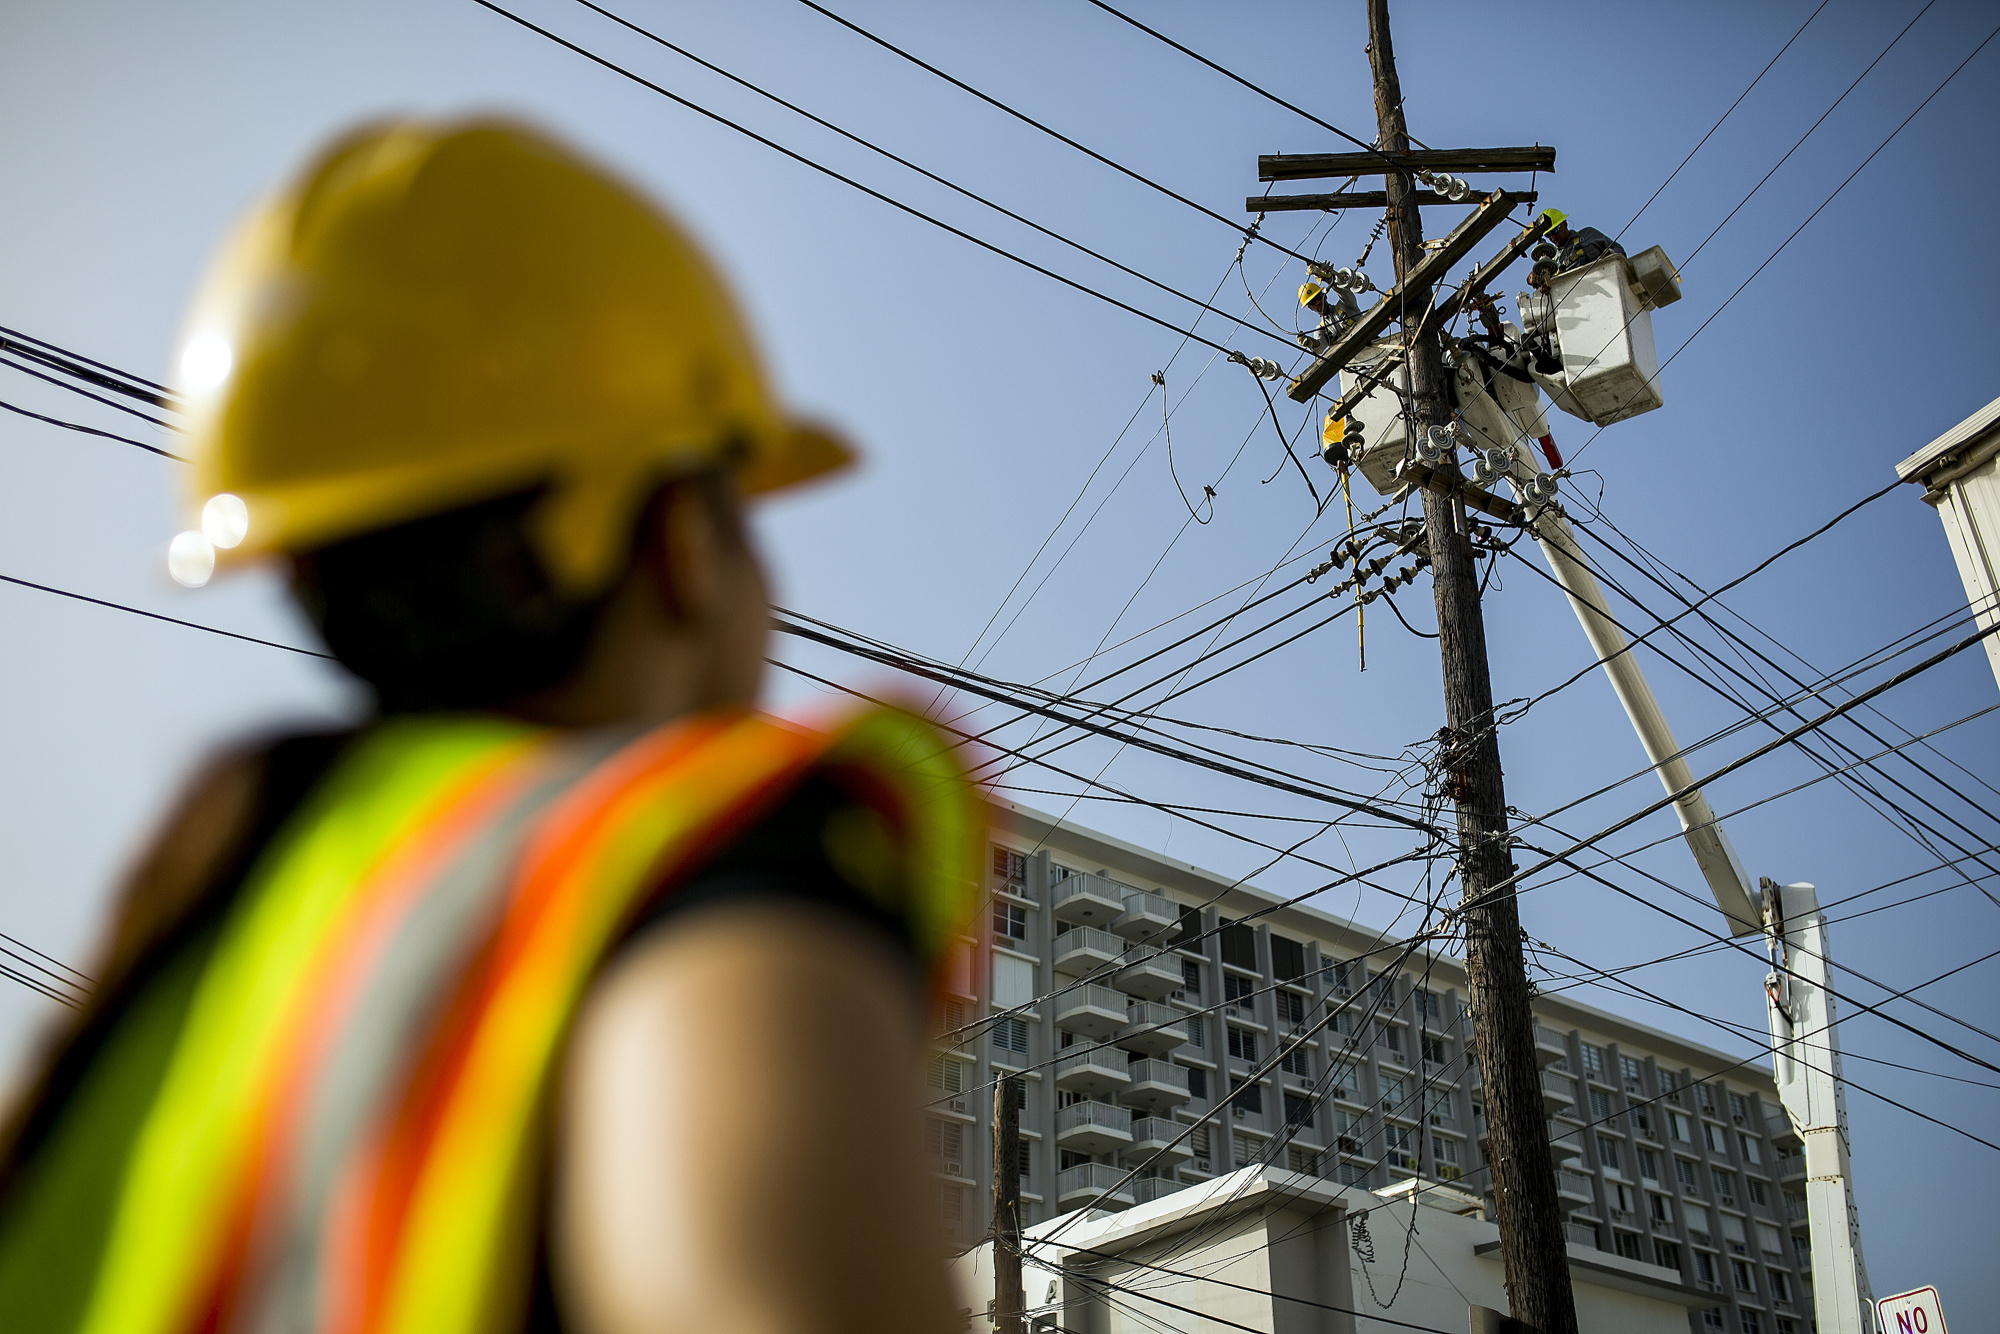 Puerto Rico Electric Power Authority (PREPA) employees fix power lines in Santurce, San Juan, Puerto Rico, on Thursday, Oct. 19, 2017. For longer than most can remember, Puerto Ricans have paid some of the highest energy costs in the U.S. to a notoriously unreliable utility that neglected their grid for years and runs fossil-fuel plants that may be damaging their lungs. A month after Hurricane Maria devastated the island, power lines still lay slack along roads, utility poles are snapped clean in half, and most Puerto Ricans remain in the dark. Photographer: Xavier Garcia/Bloomberg